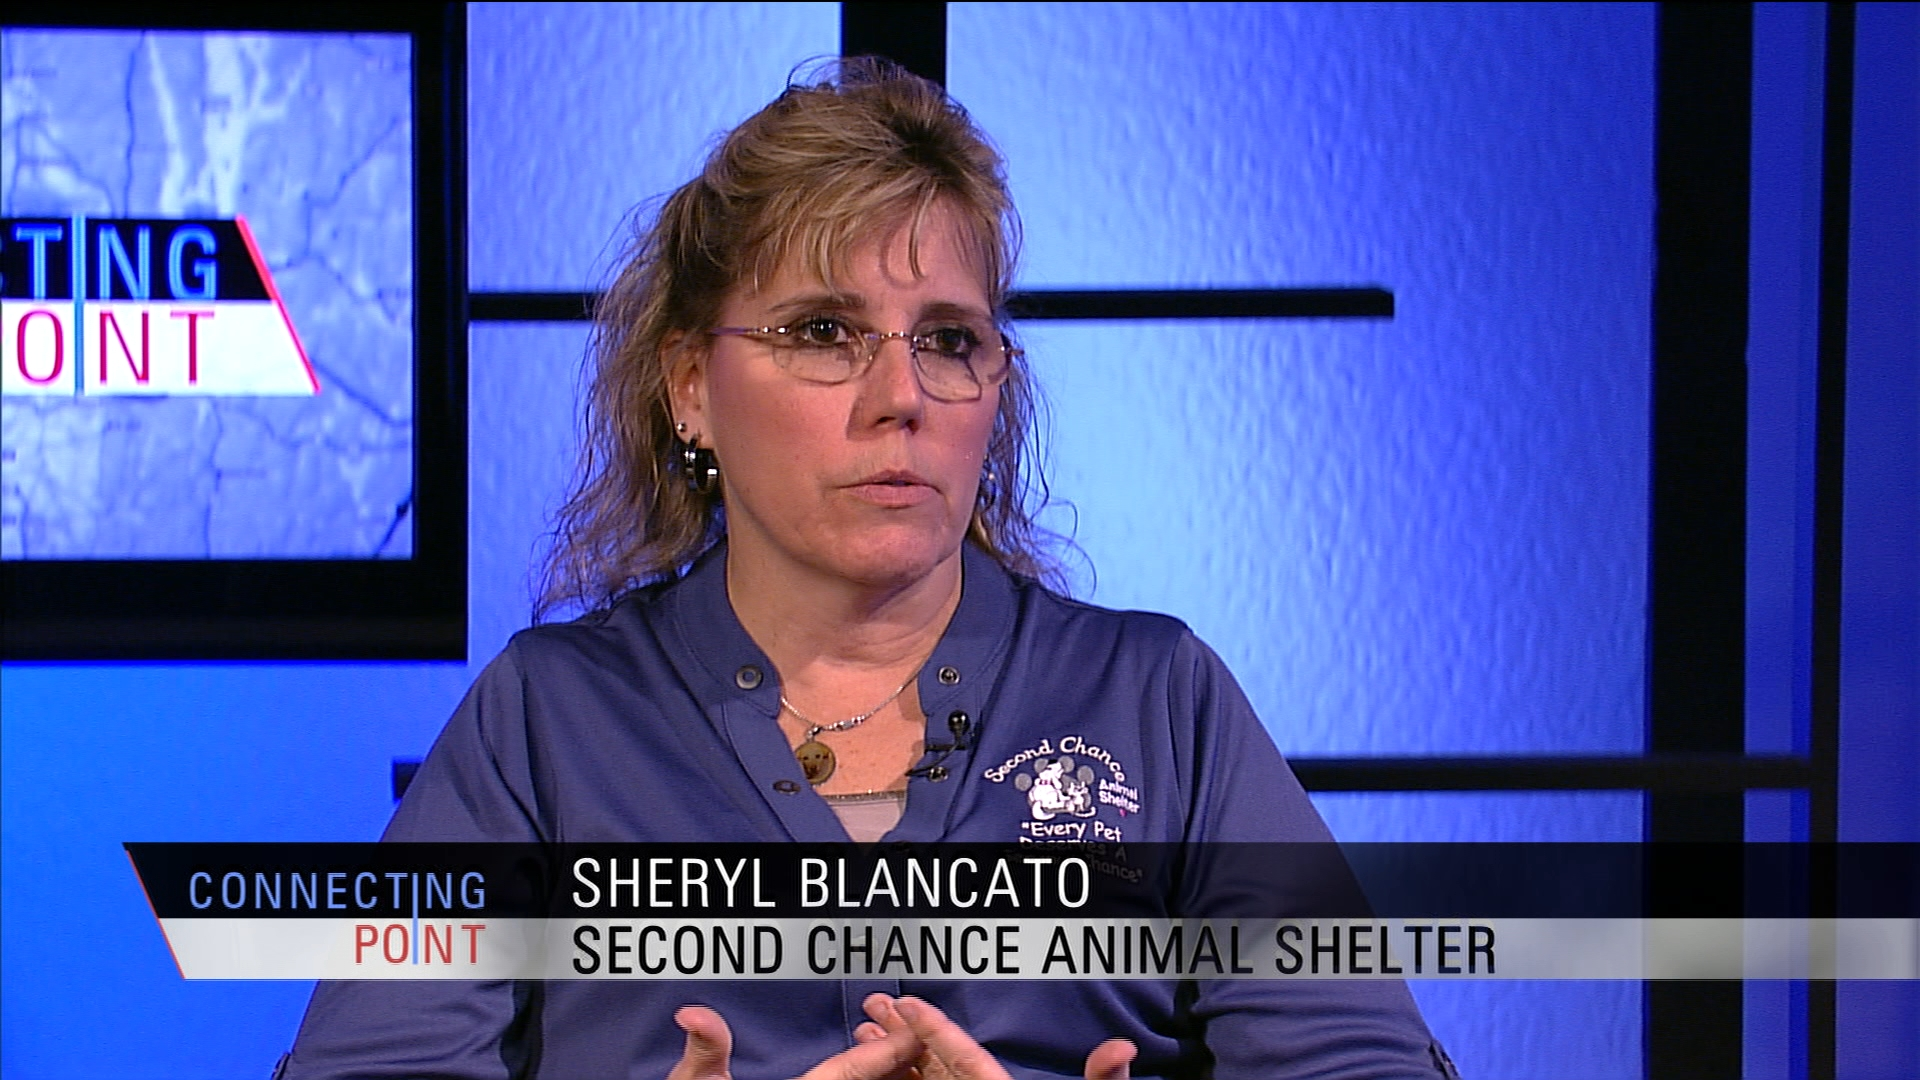 Sheryl Blancato & Lindsay Doray of Second Chance Animal Shelter discuss the need for community vet clinics in urban areas, like the one in Springfield.